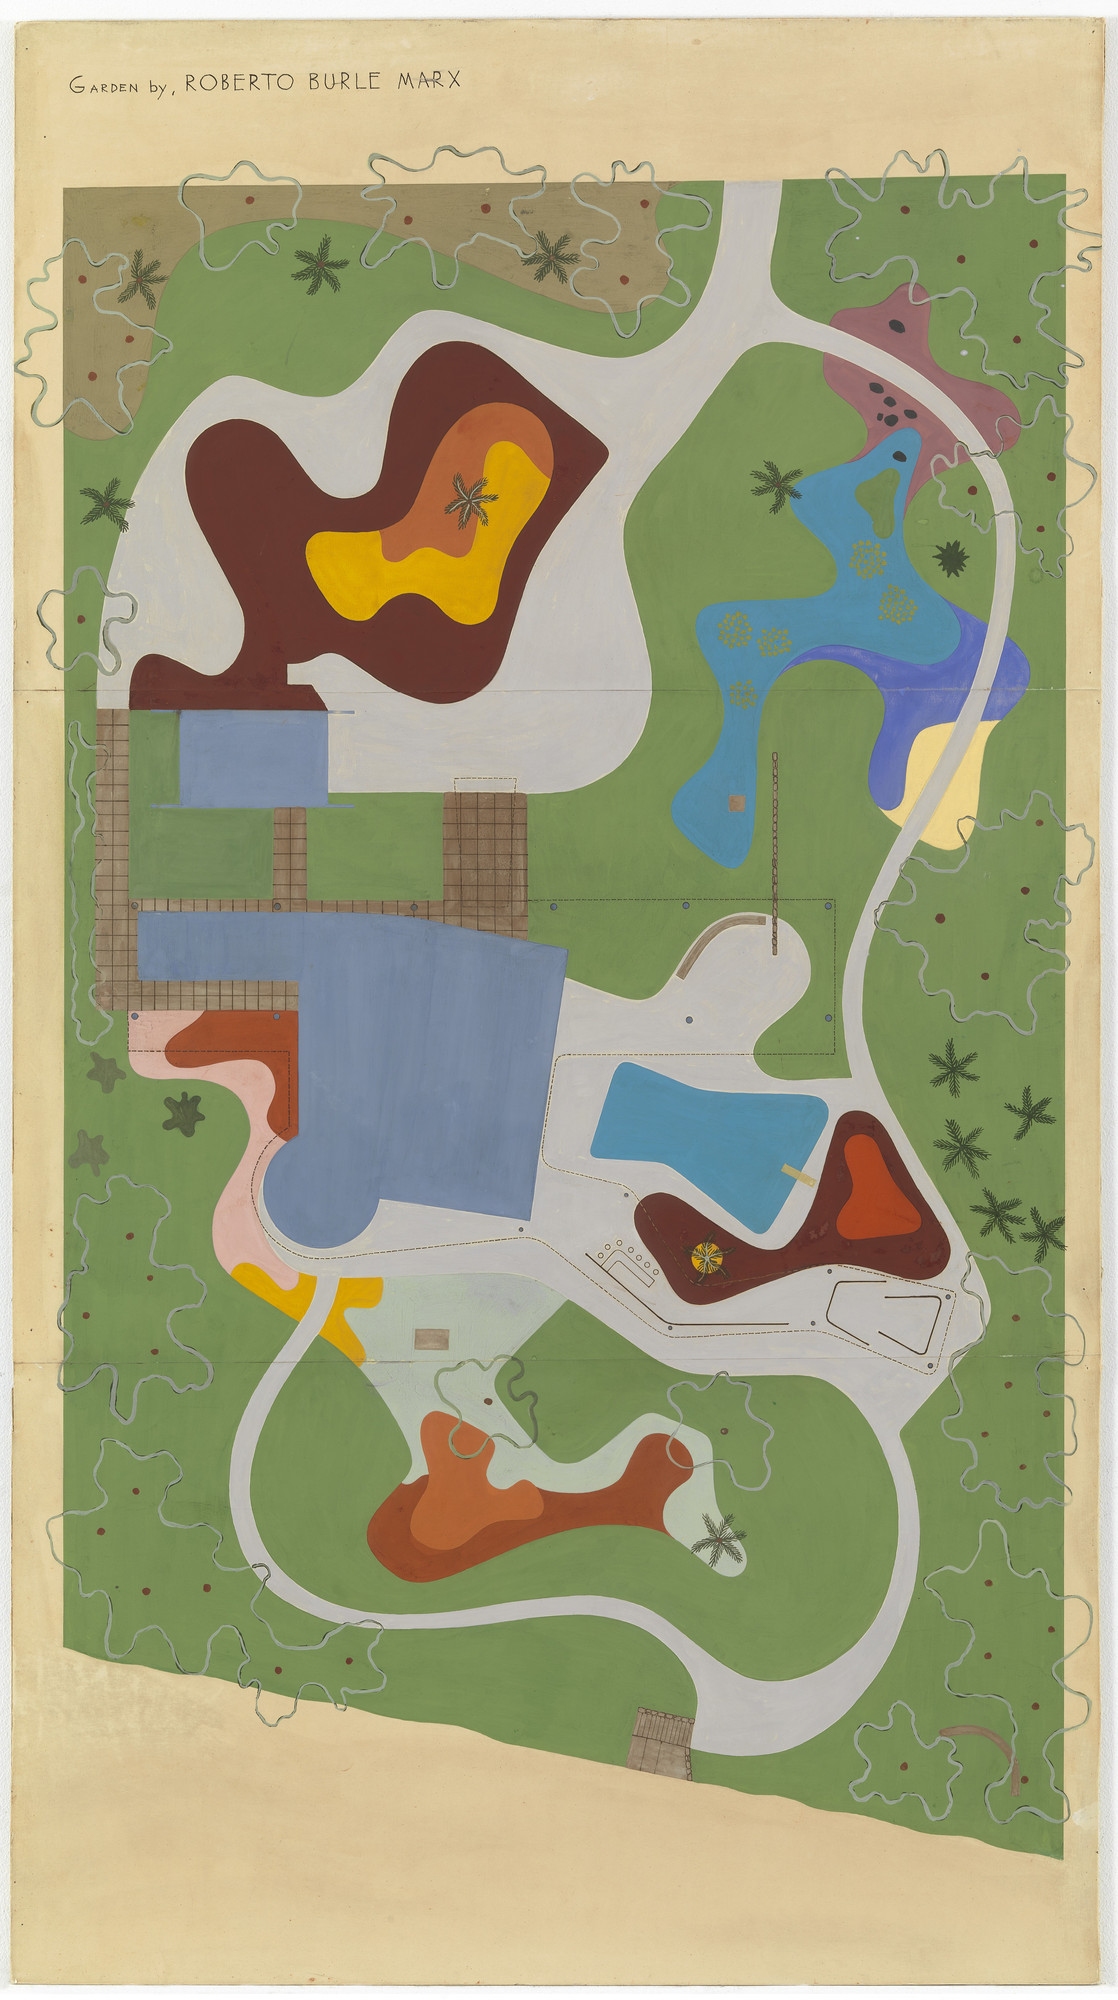 Roberto Burle Marx Garden Design For Beach House Mr And Mrs Burton Tremaine Project Santa Barbara California Site Plan 1948